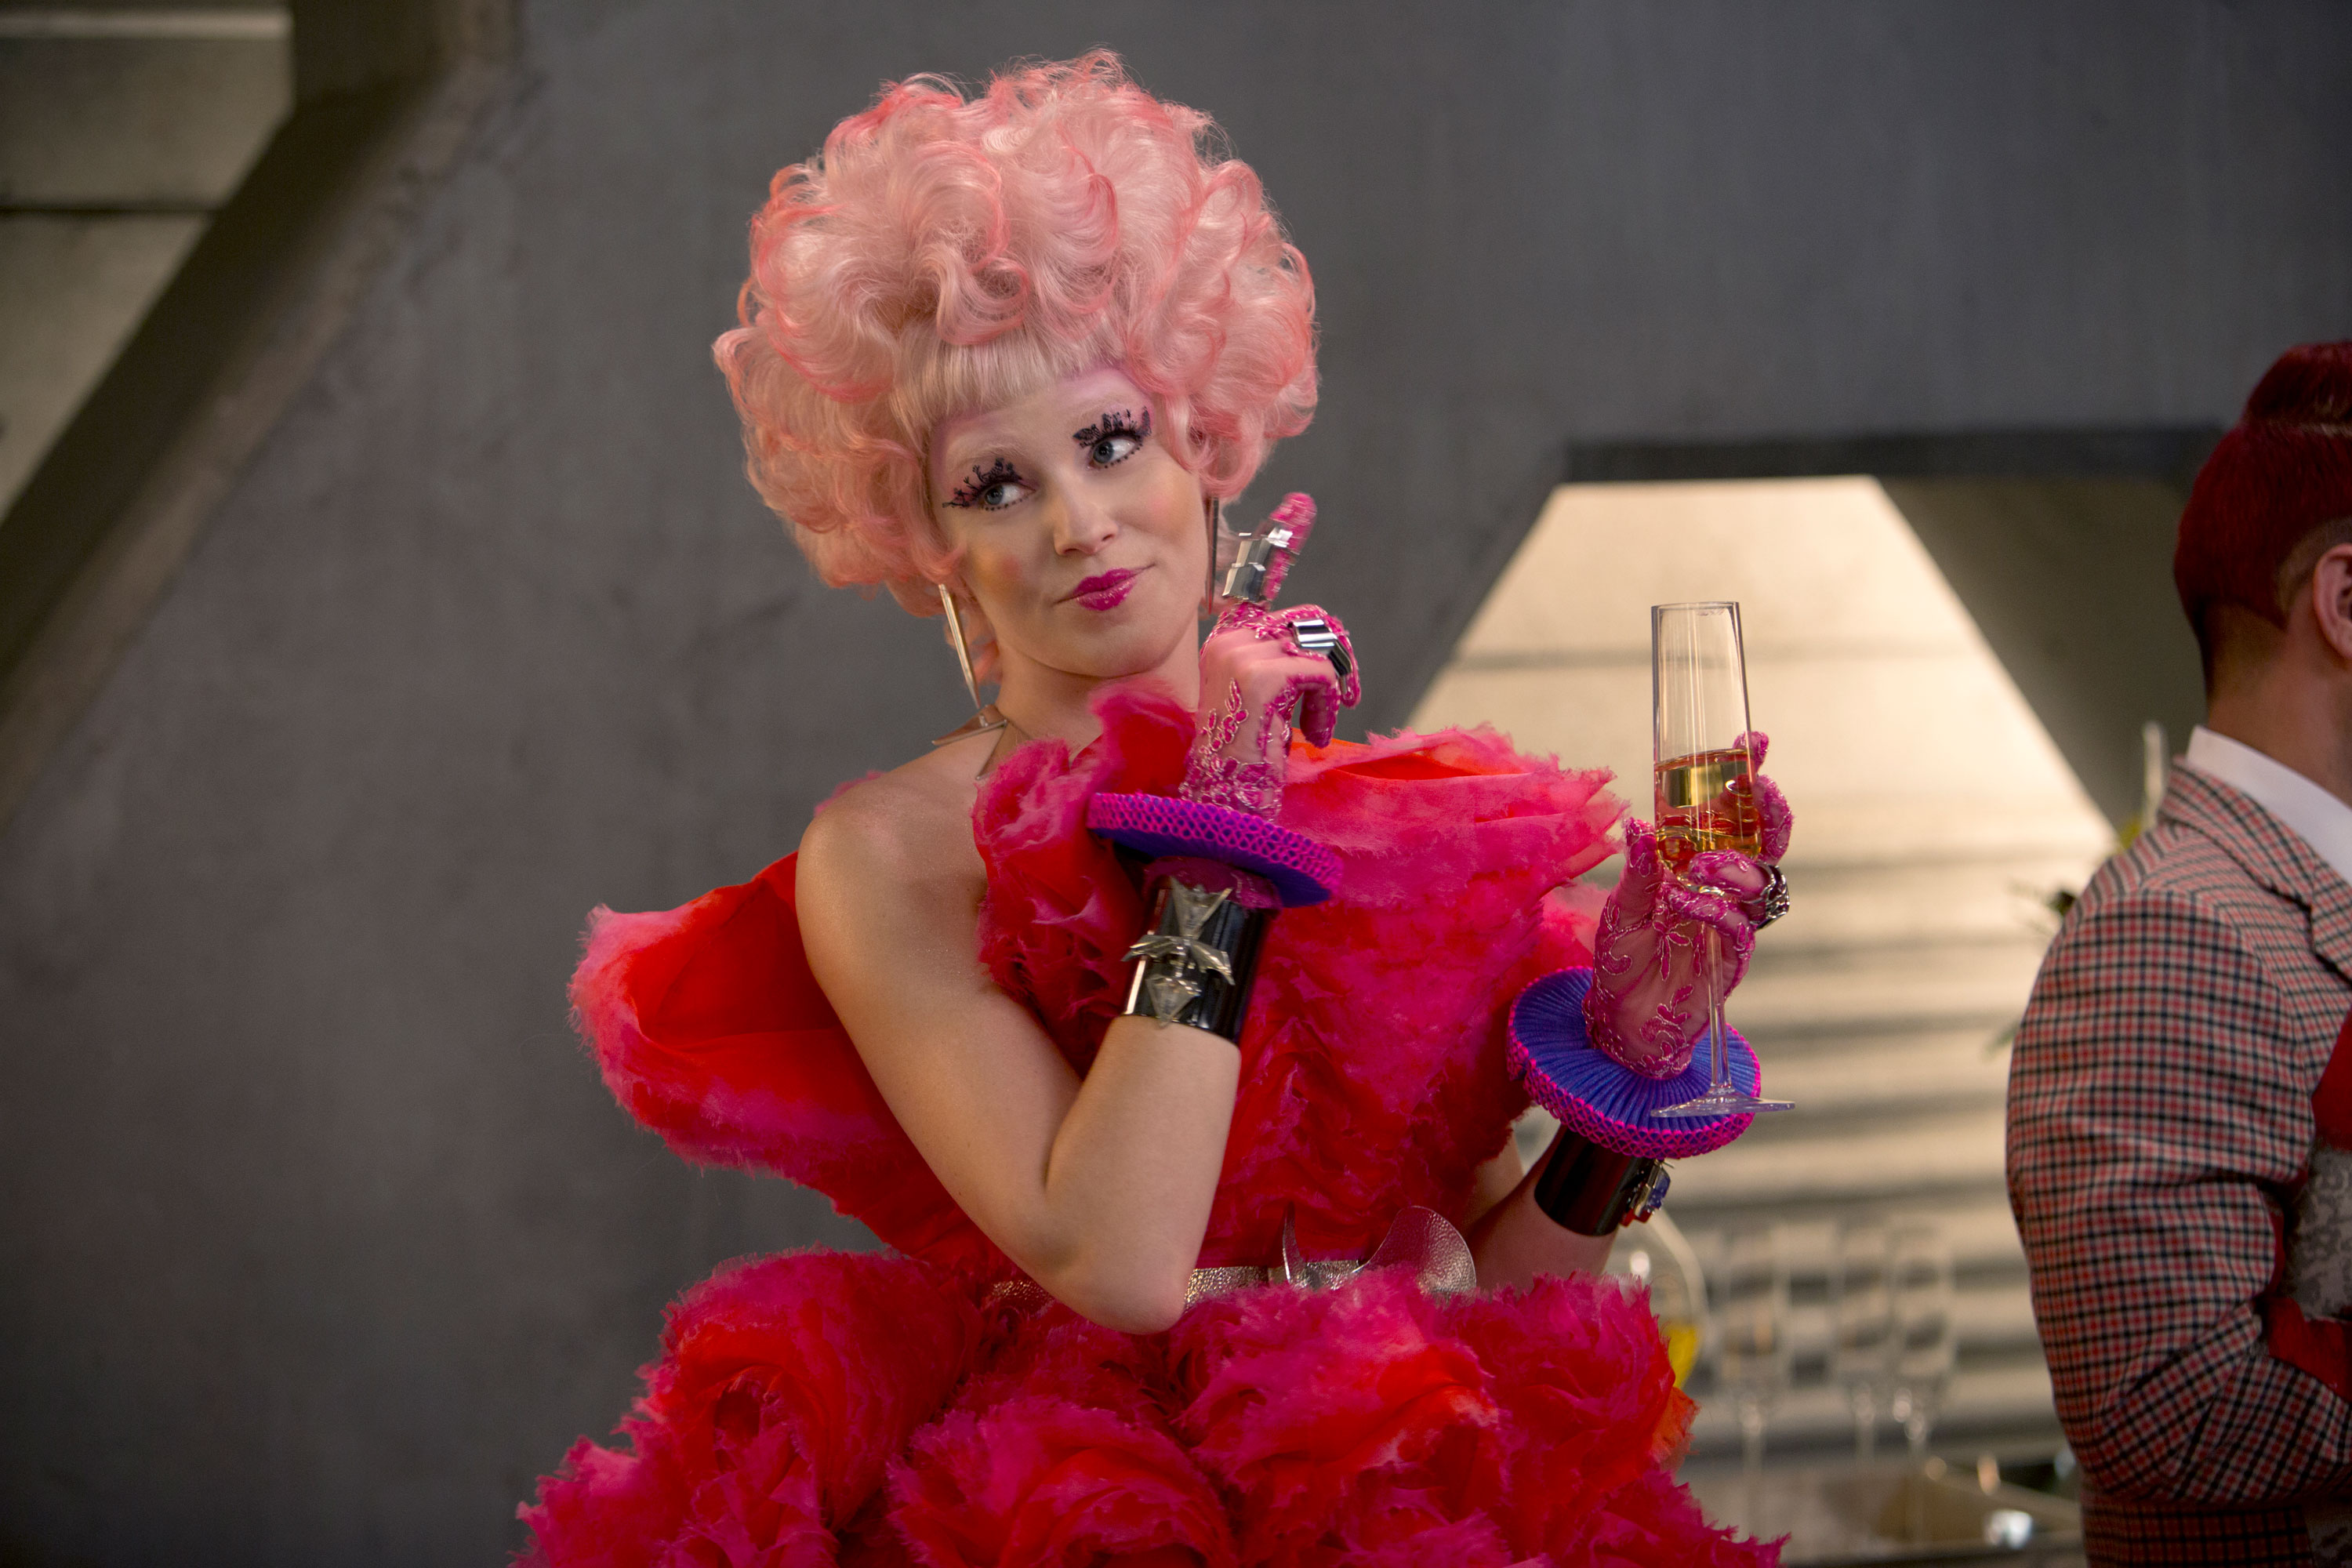 Effie-Trinket-Elizabeth-Banks-Pink-Hair-Hunger-Games-Catching-Fire-Official-Still-Photo